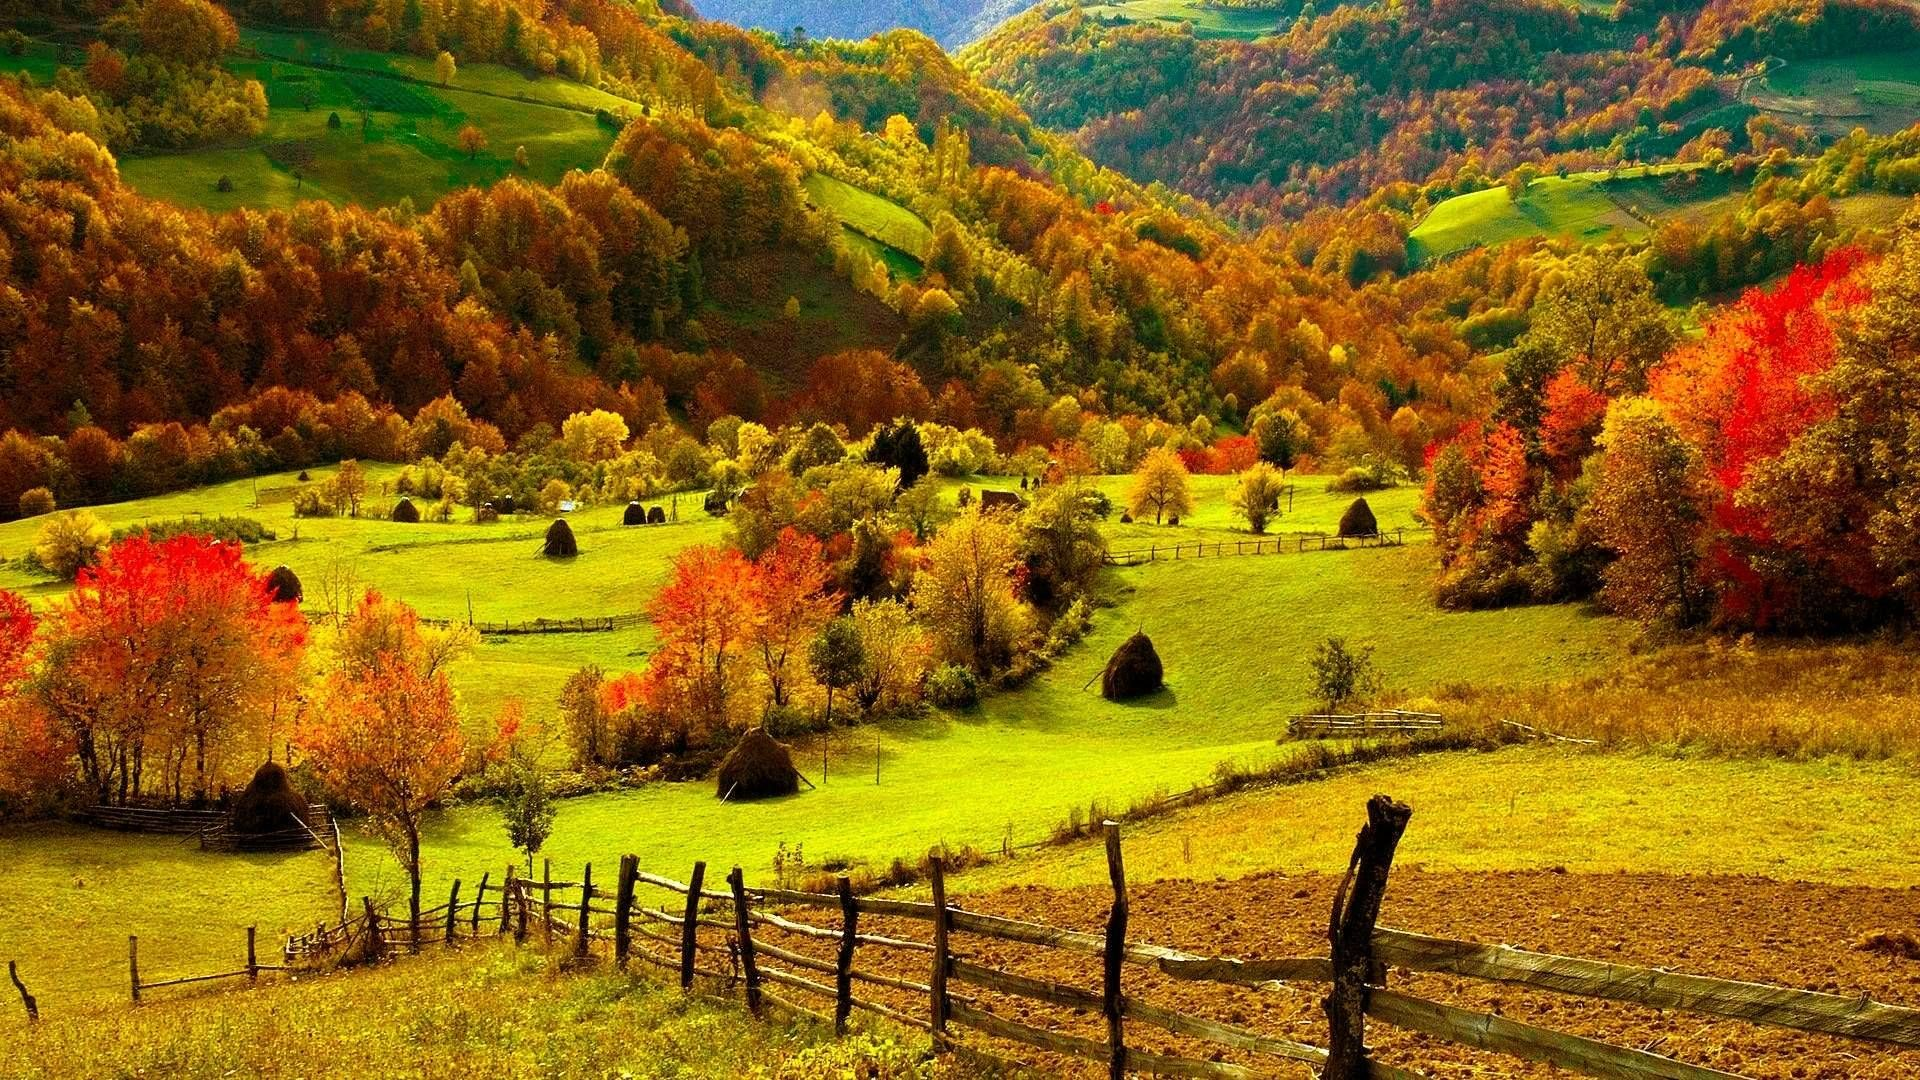 Desktop Wallpaper Fall Scenes, Best Fall Scenes Wallpapers